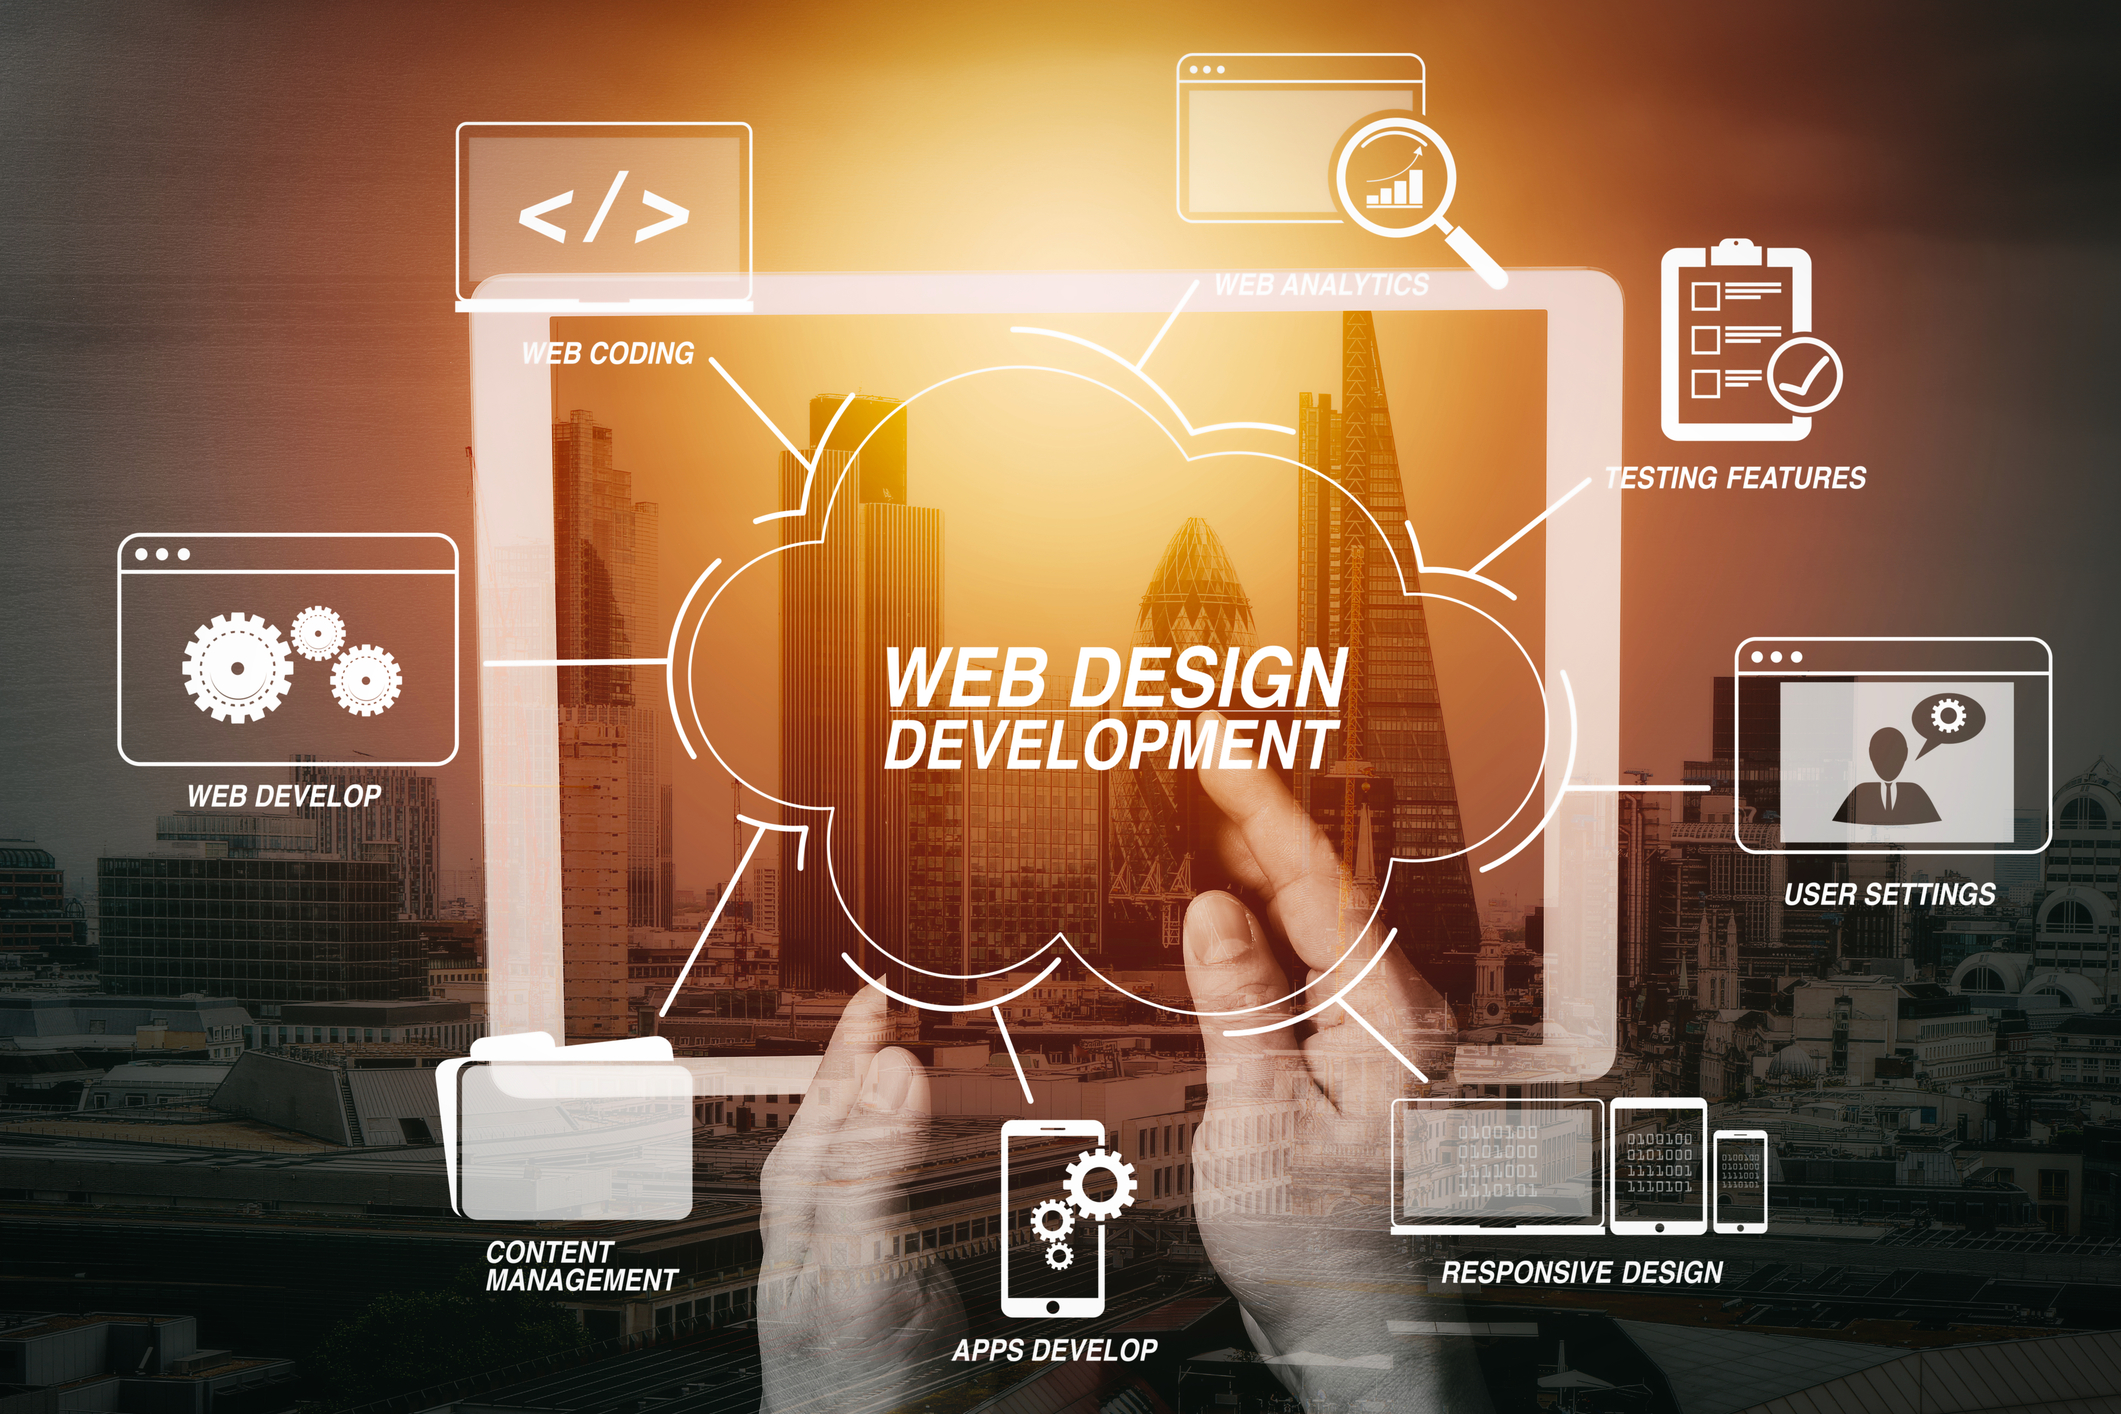 Developing programming and coding technologies with Website design in virtual diagram.cyber security internet and networking concept.Businessman hand working on mobile phone and digital tablet computer with building exposure